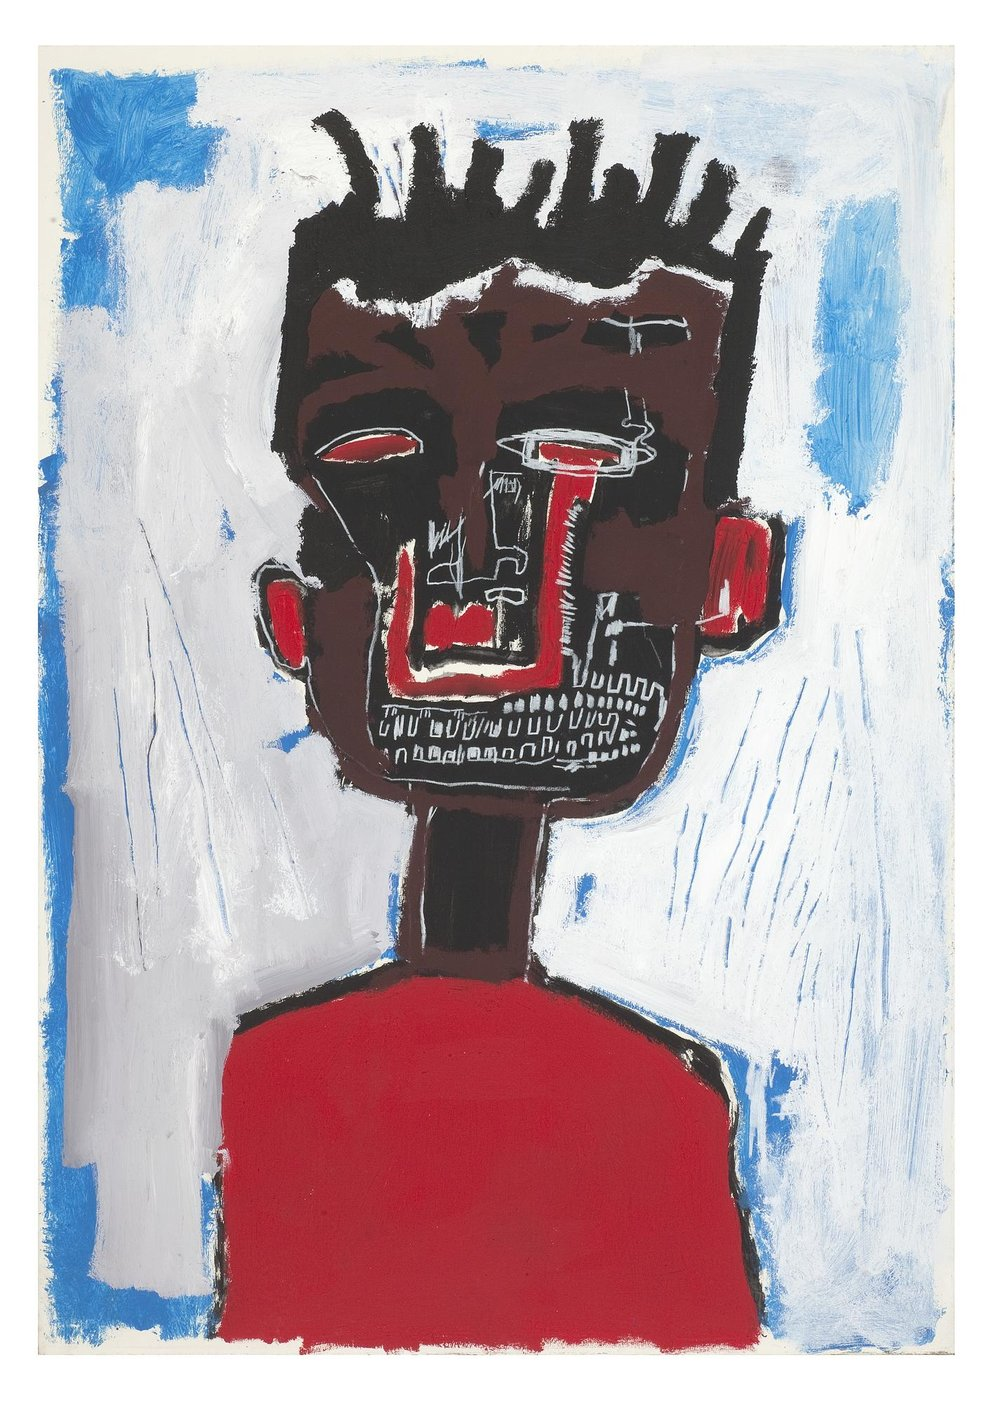 J Self Portrait (1984). Photograph: Jean-Michel Basquiat/Barbican